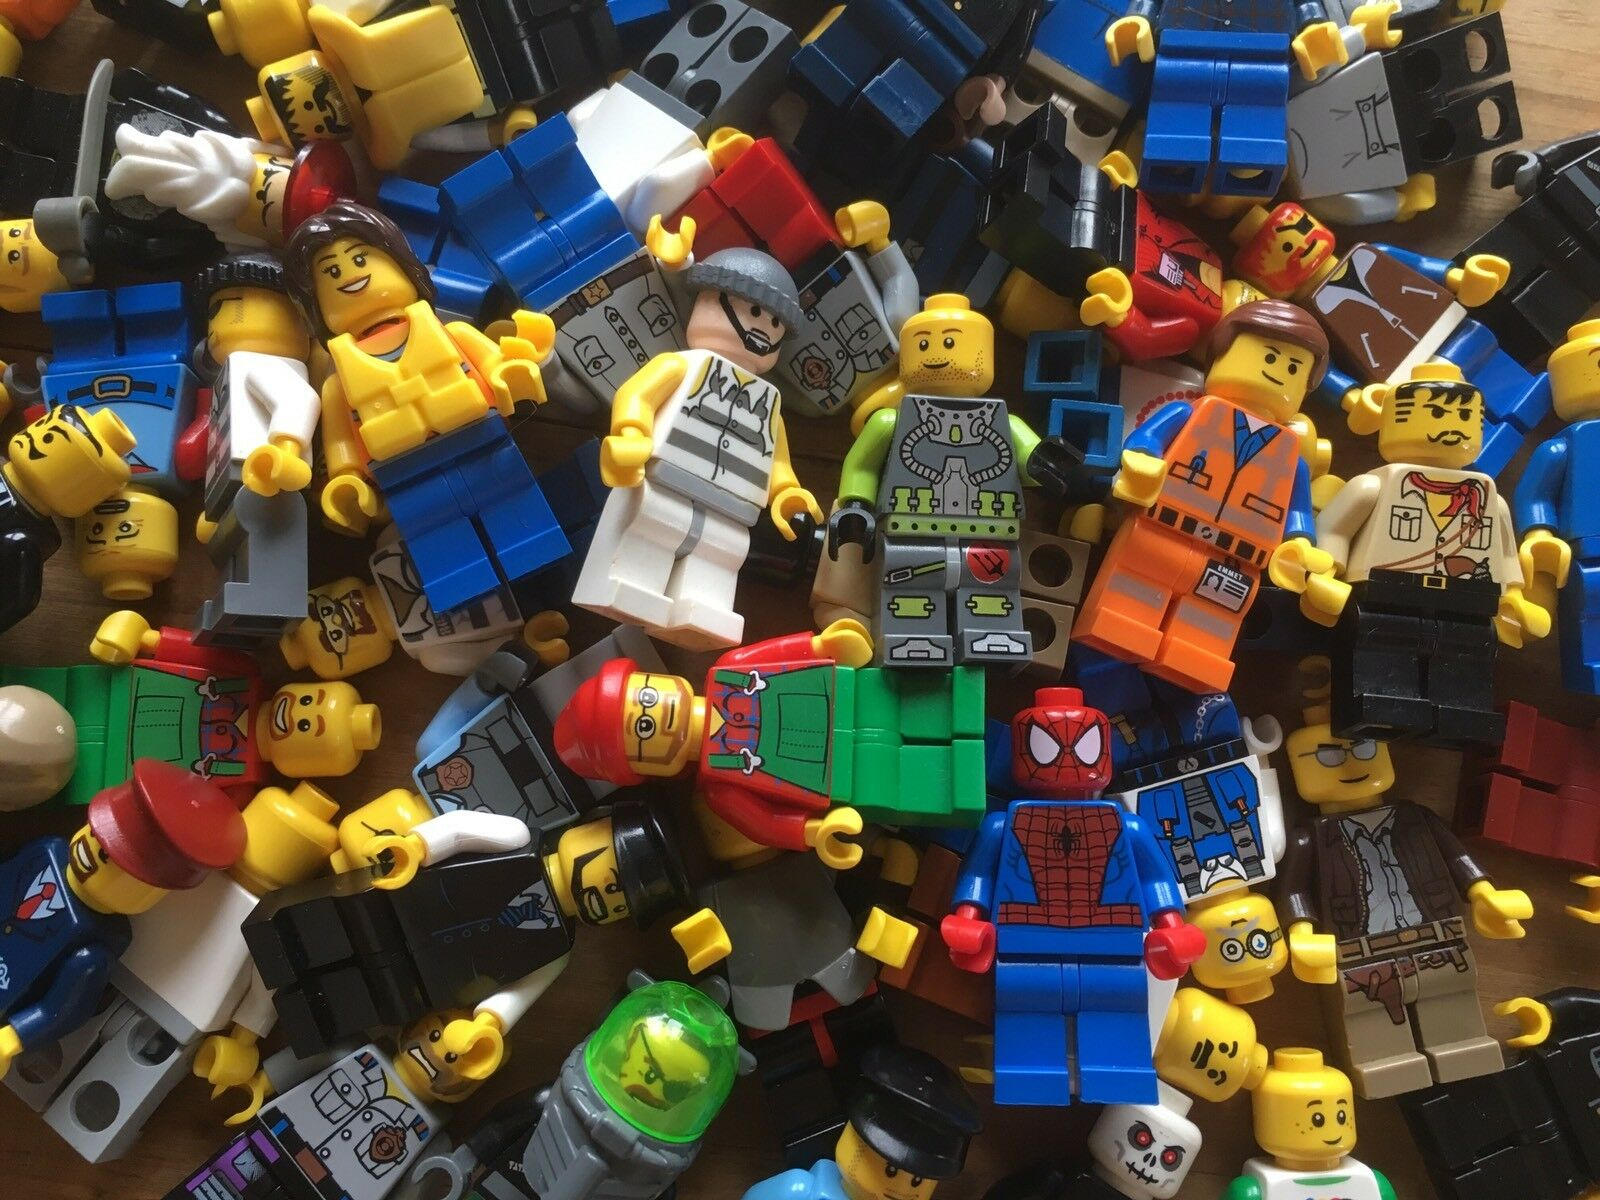 25xLEGO minifigures + 25 X Accessories   Weapons job lot space city police Fire